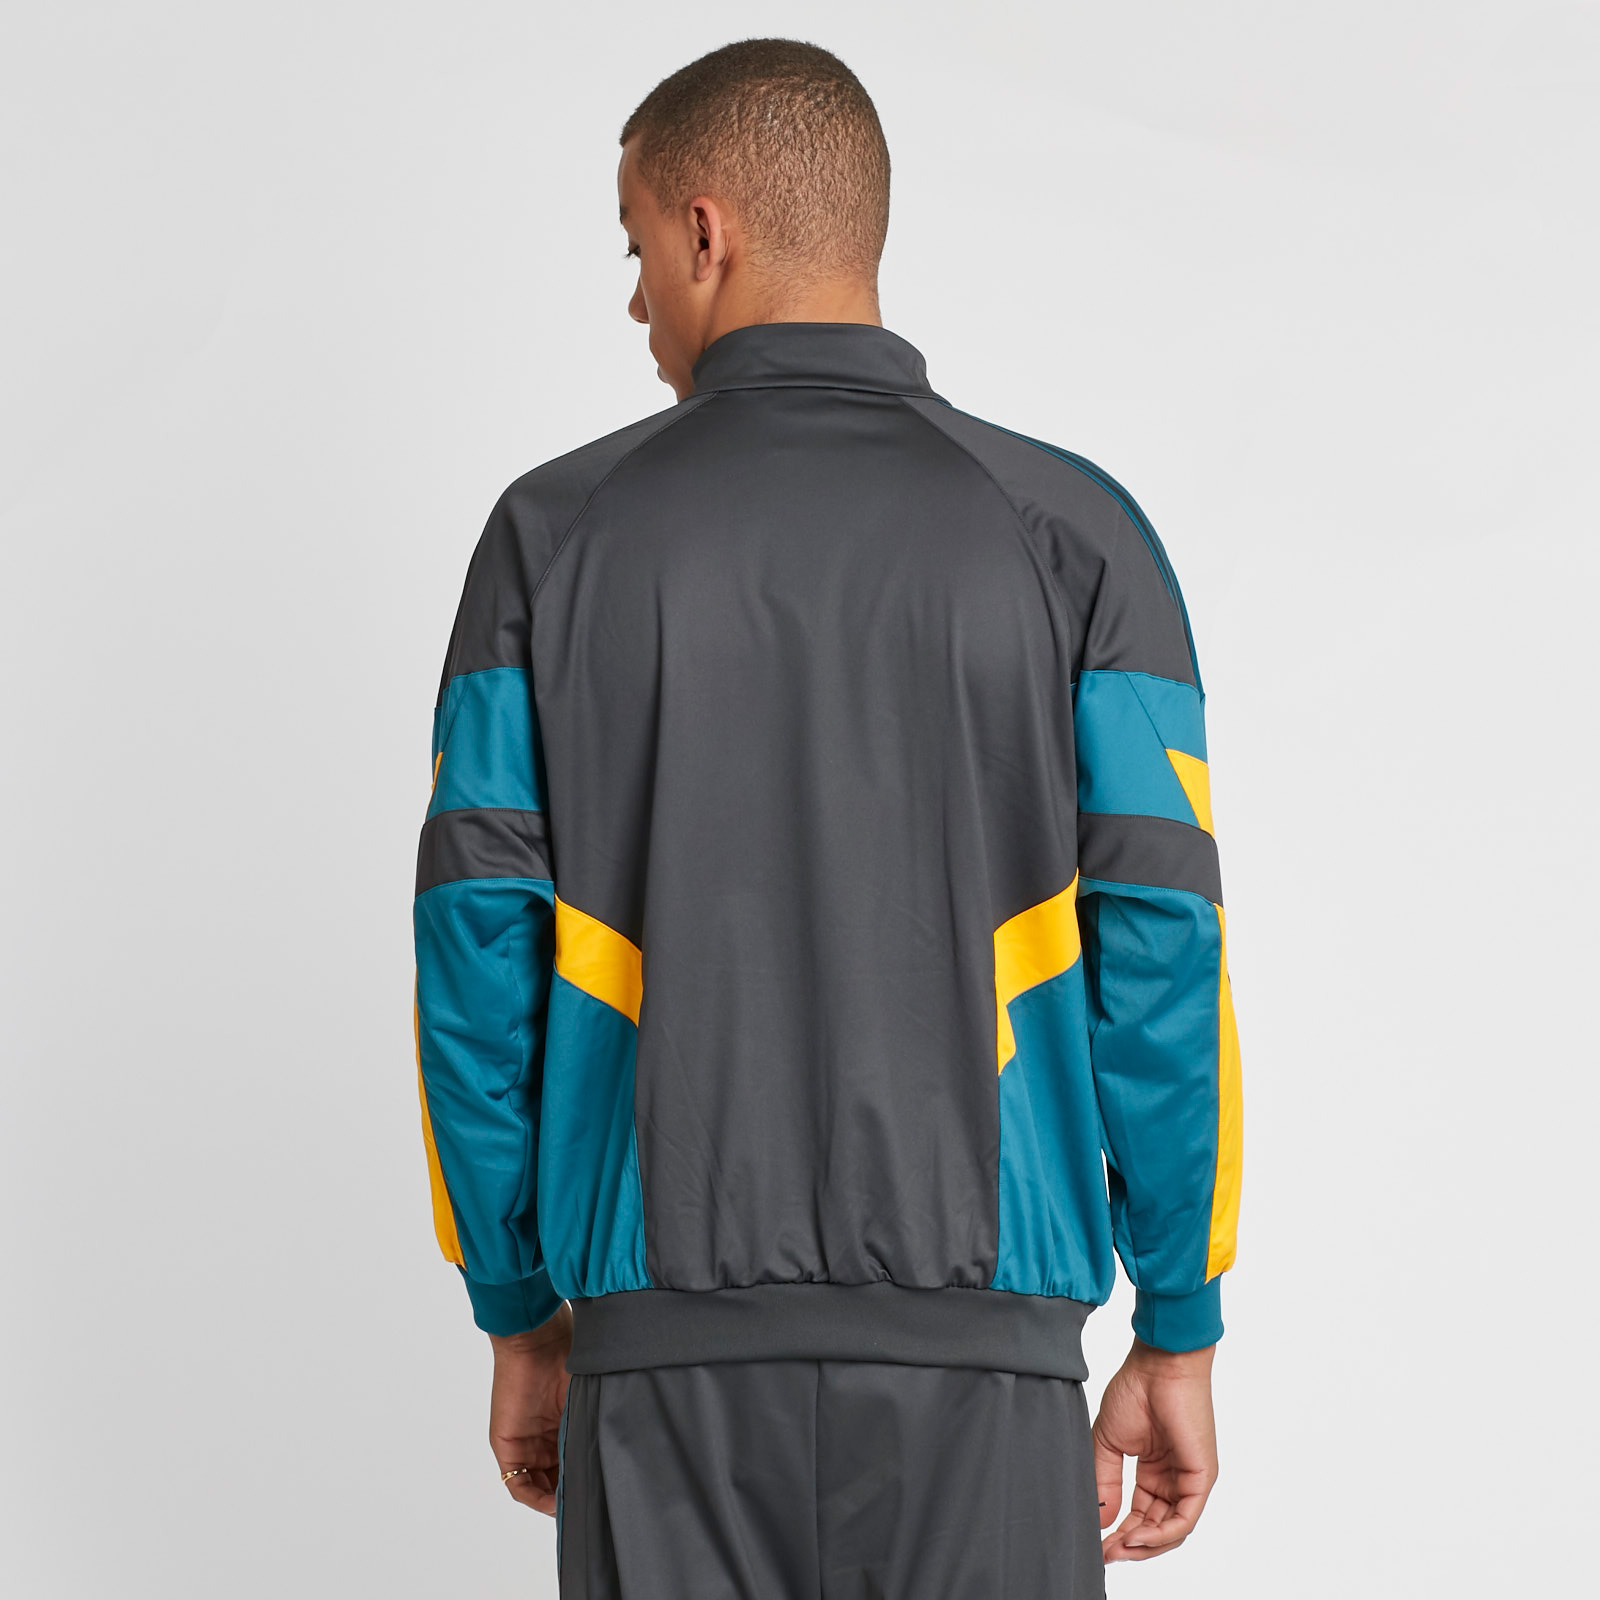 adidas Aloxe Track Top Ce4829 Sneakersnstuff | sneakers